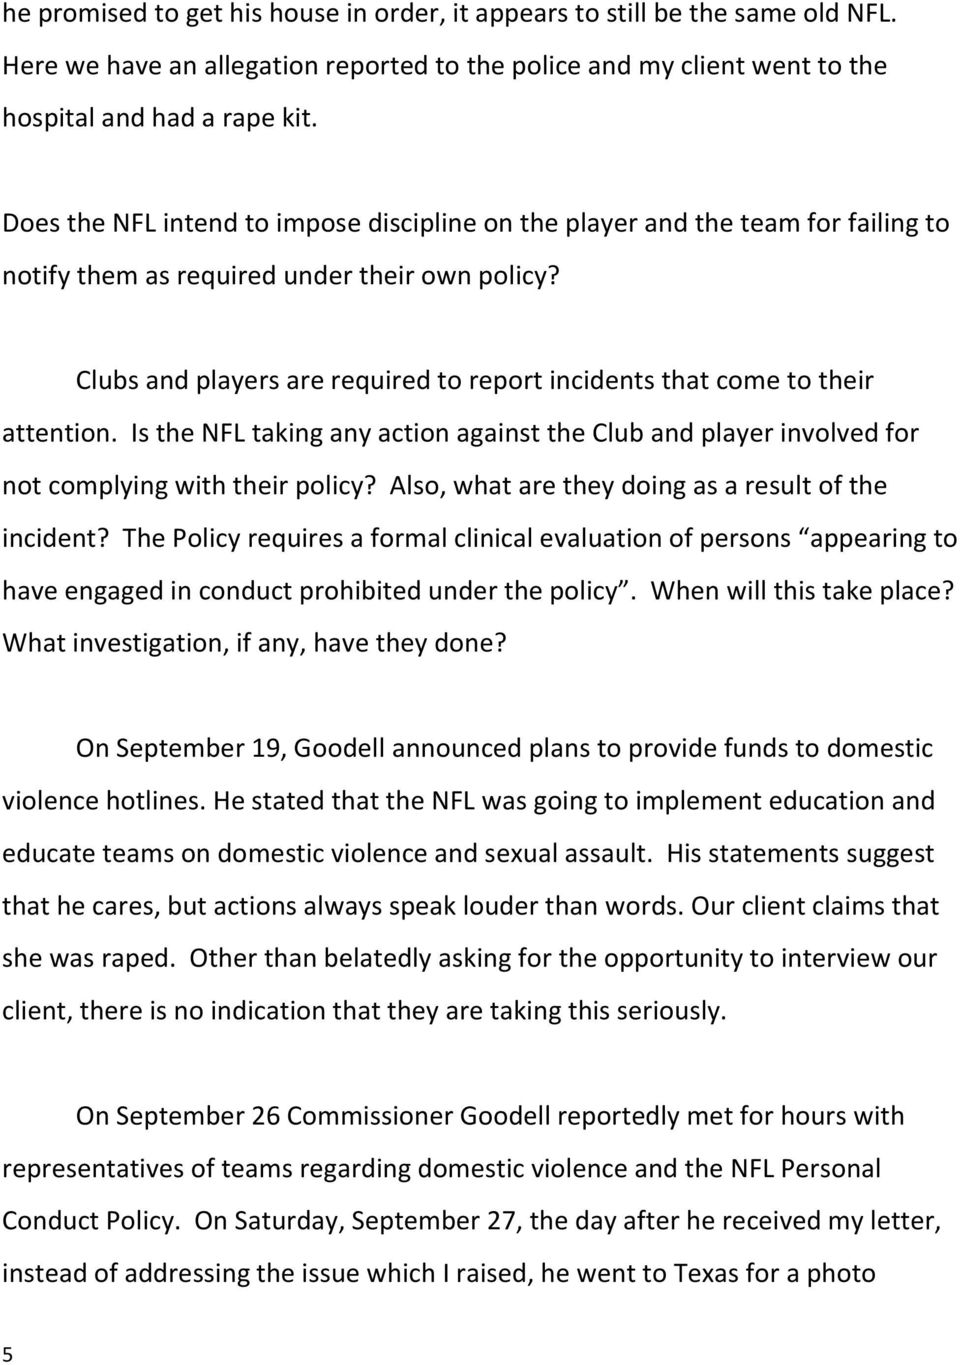 Clubs and players are required to report incidents that come to their attention. Is the NFL taking any action against the Club and player involved for not complying with their policy?